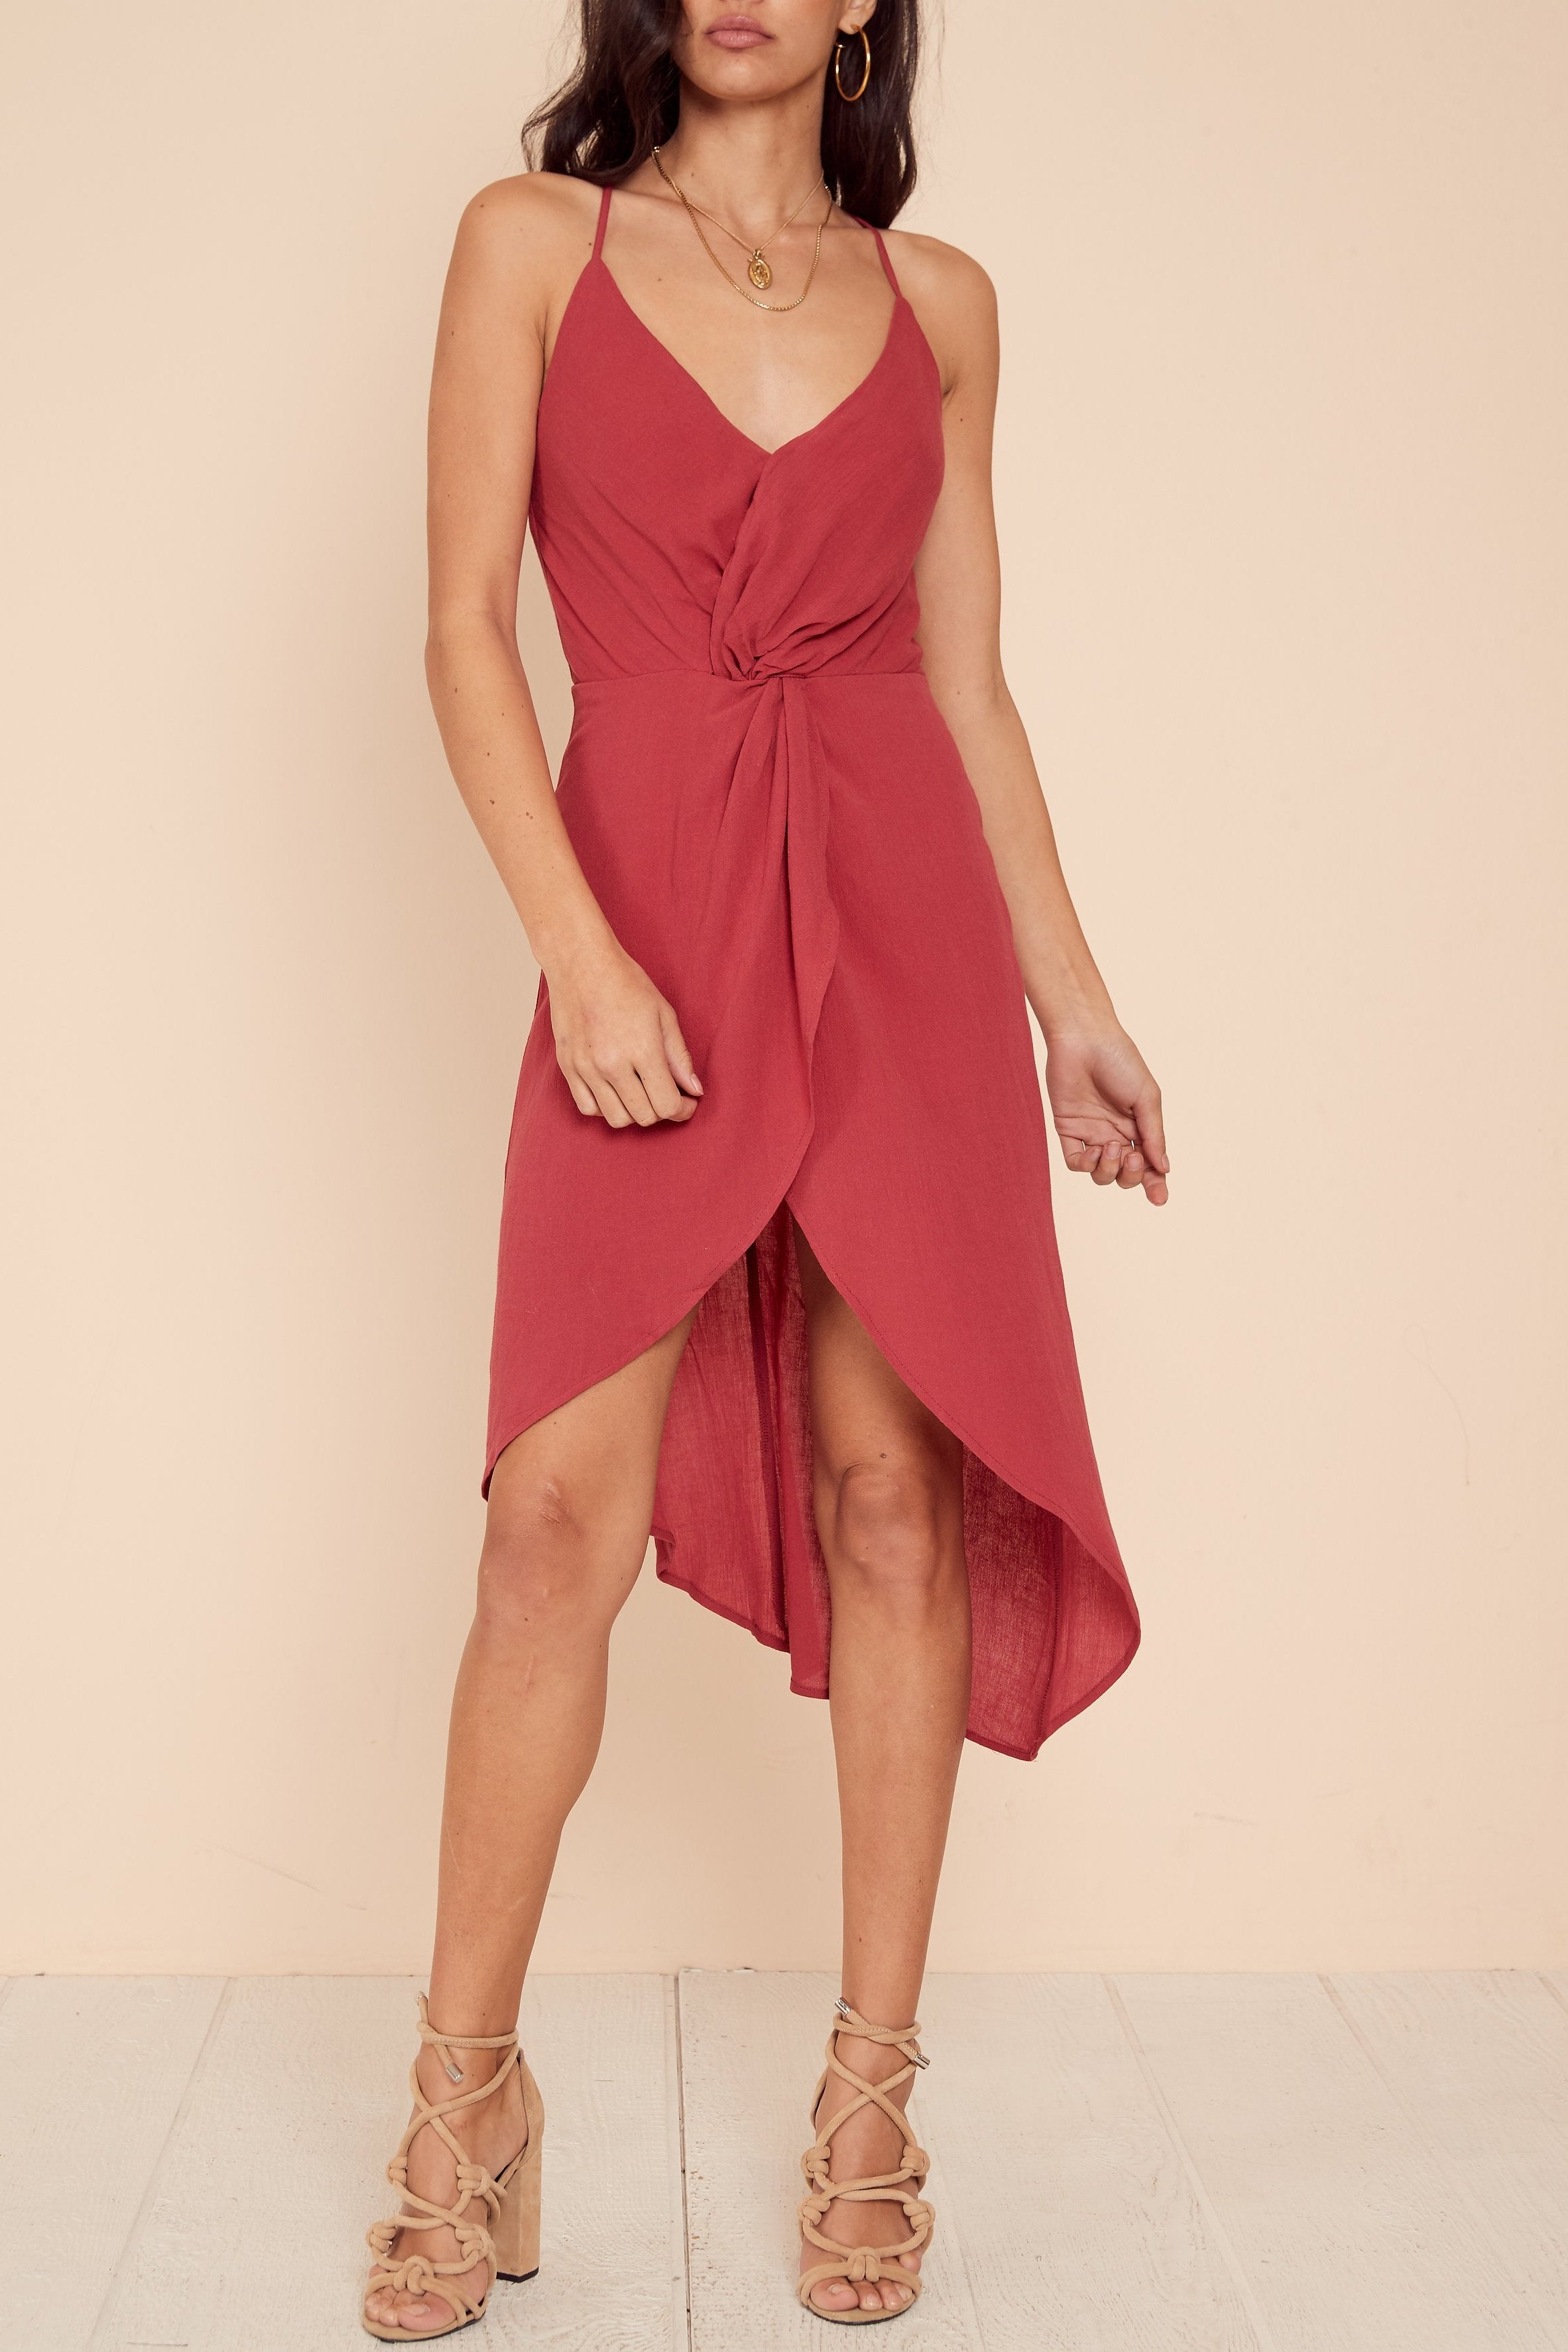 Meant To Be Midi Dress - FINAL SALE